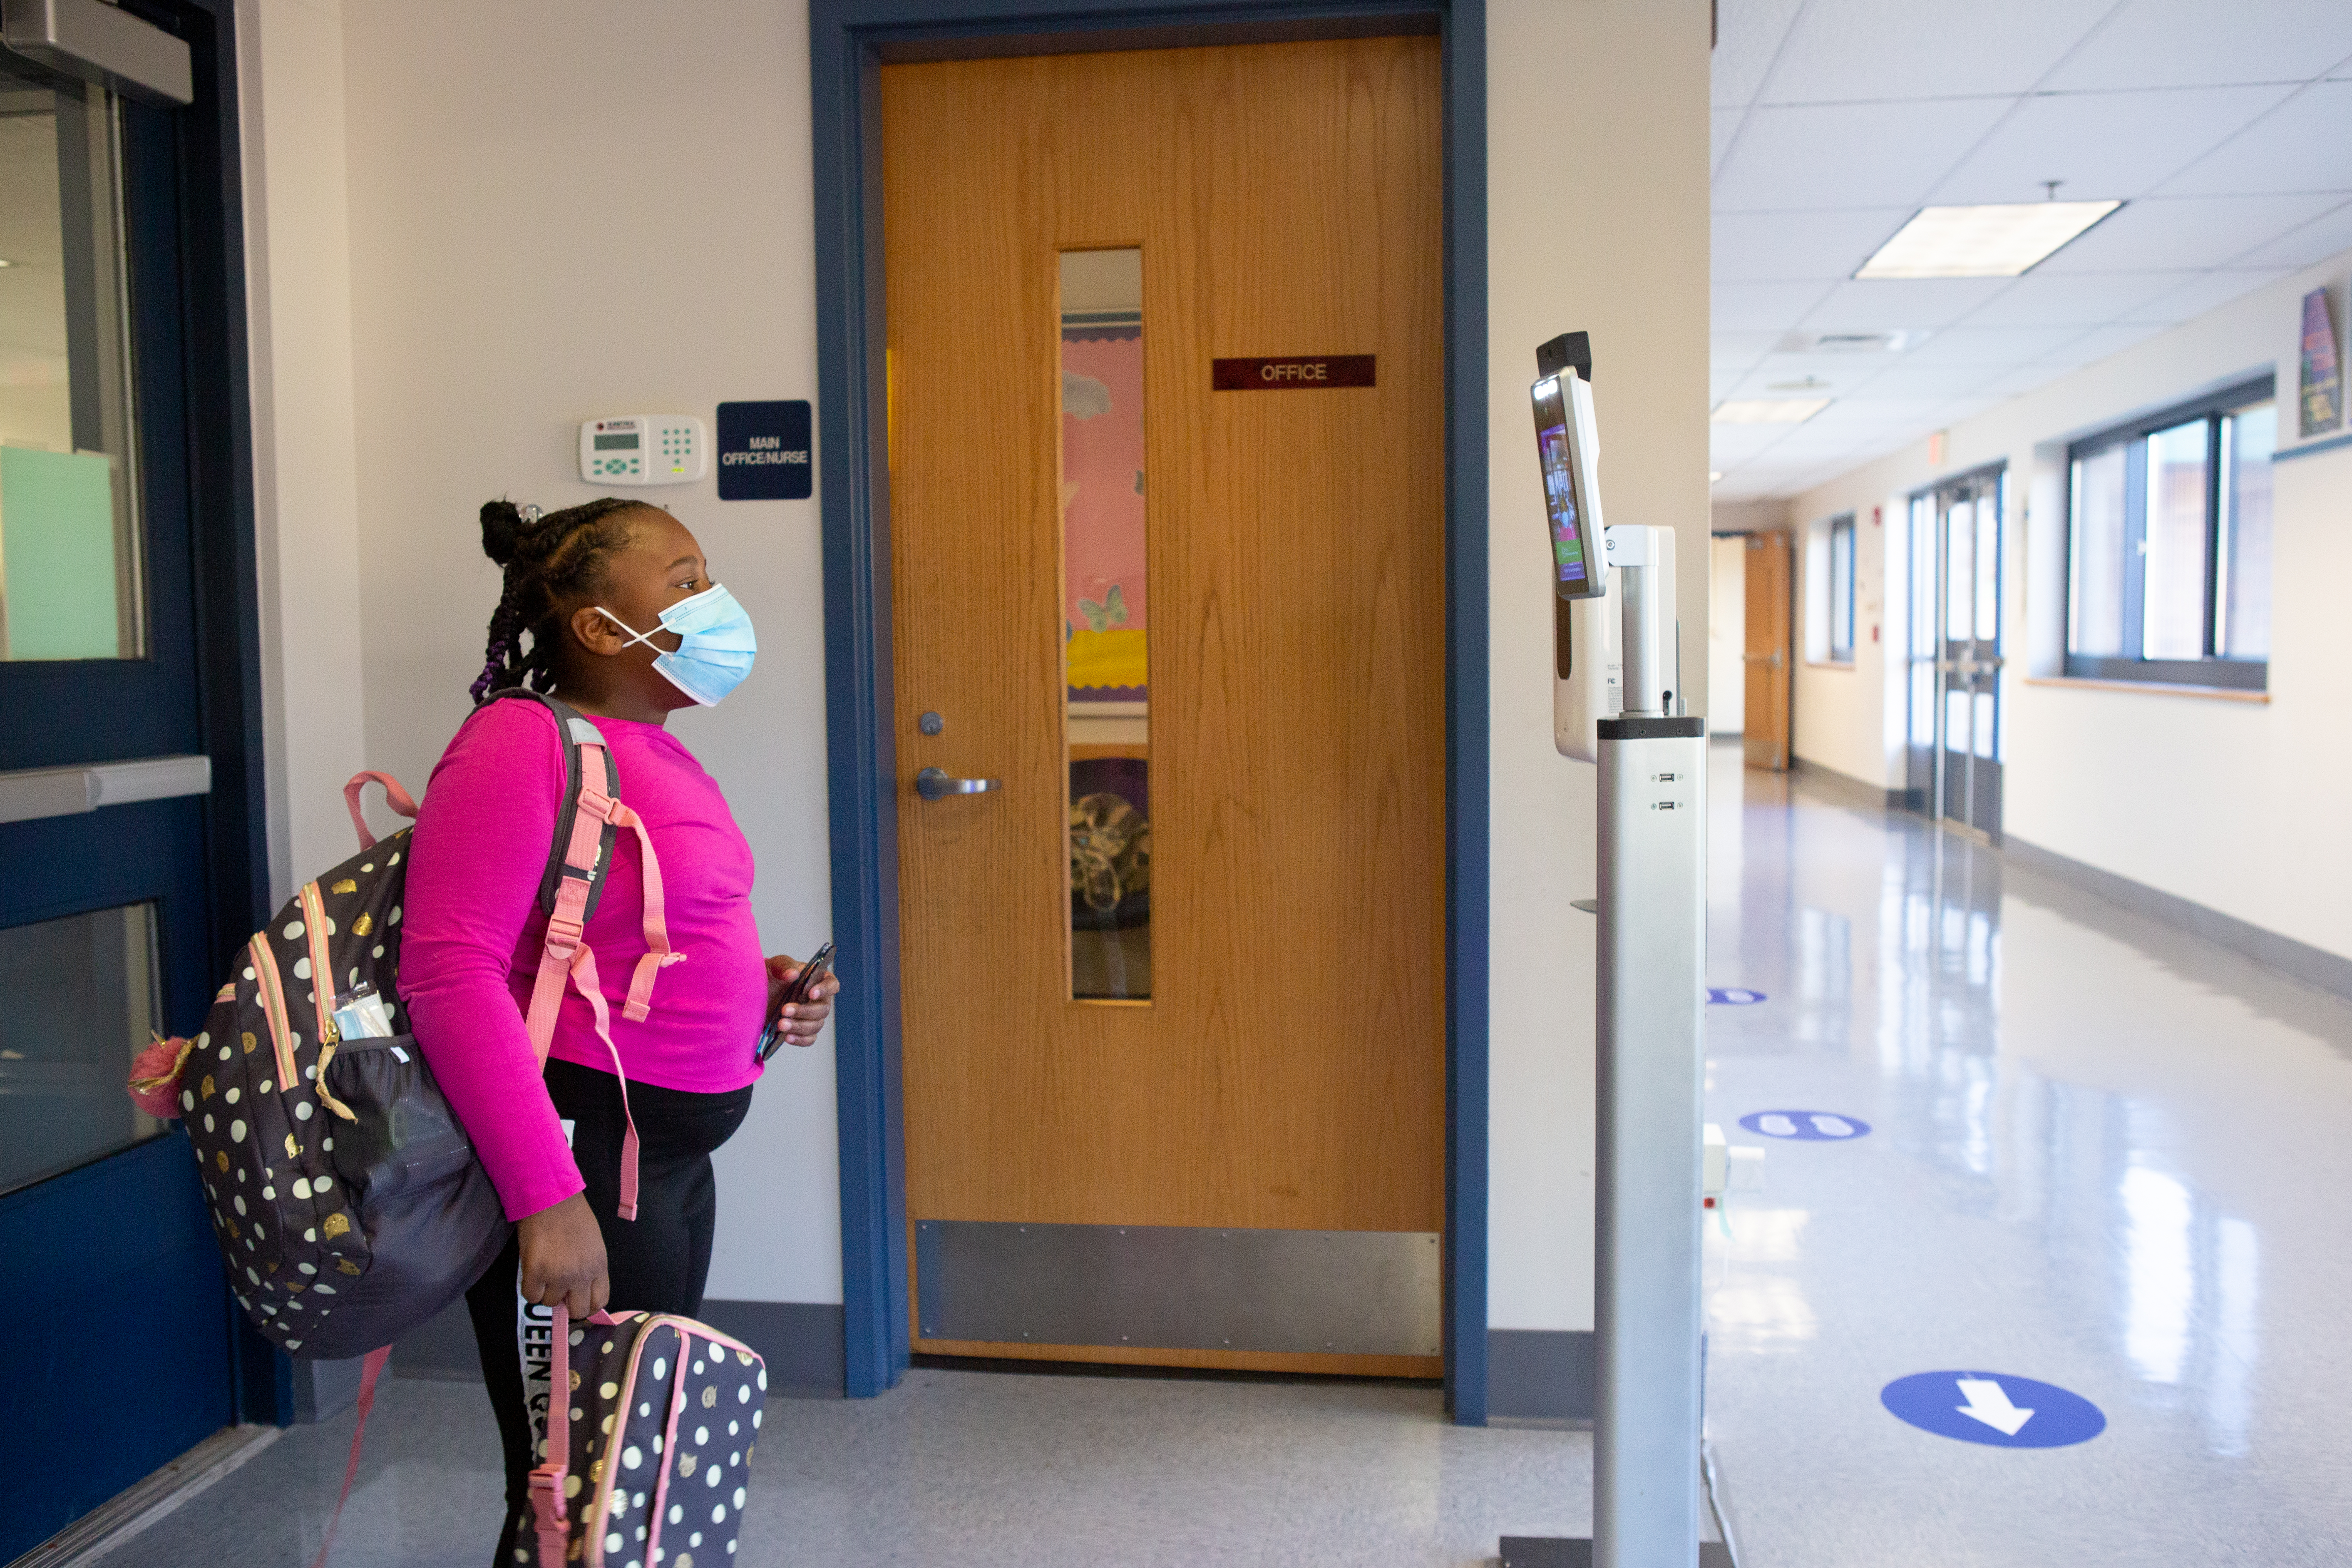 At student in a pink sweatshirt stands in front of a thermal temperature scanner at Wesley Elementary School in Middletown, CT, October 8, 2020.